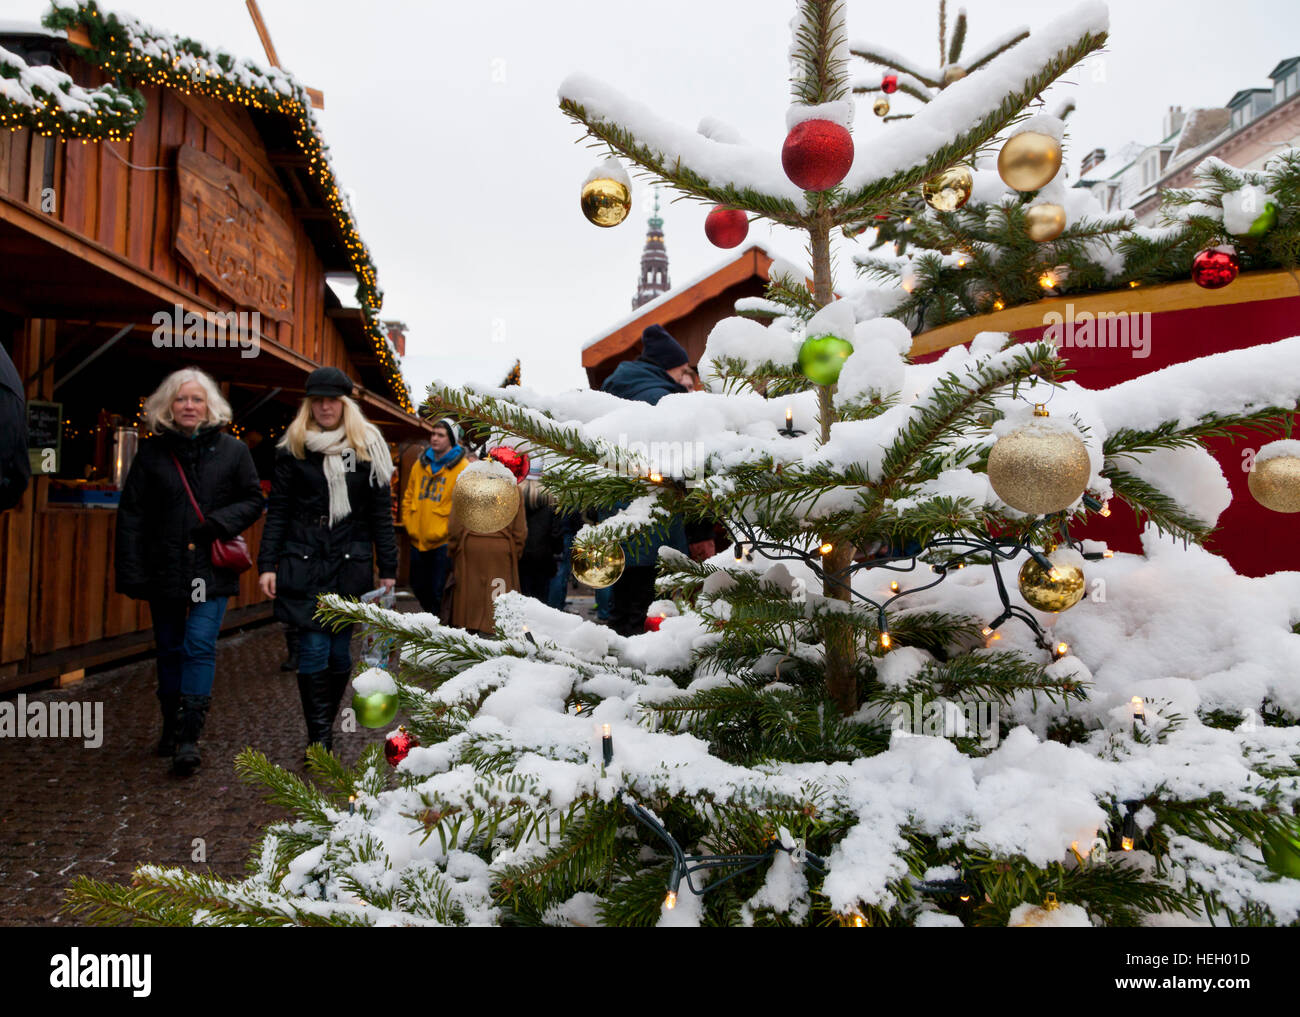 Decorated Christmas tree with snow at Christmas market in Højbro Plads, Hoejbro Square, on Strøget, Stroeget, - Stock Image